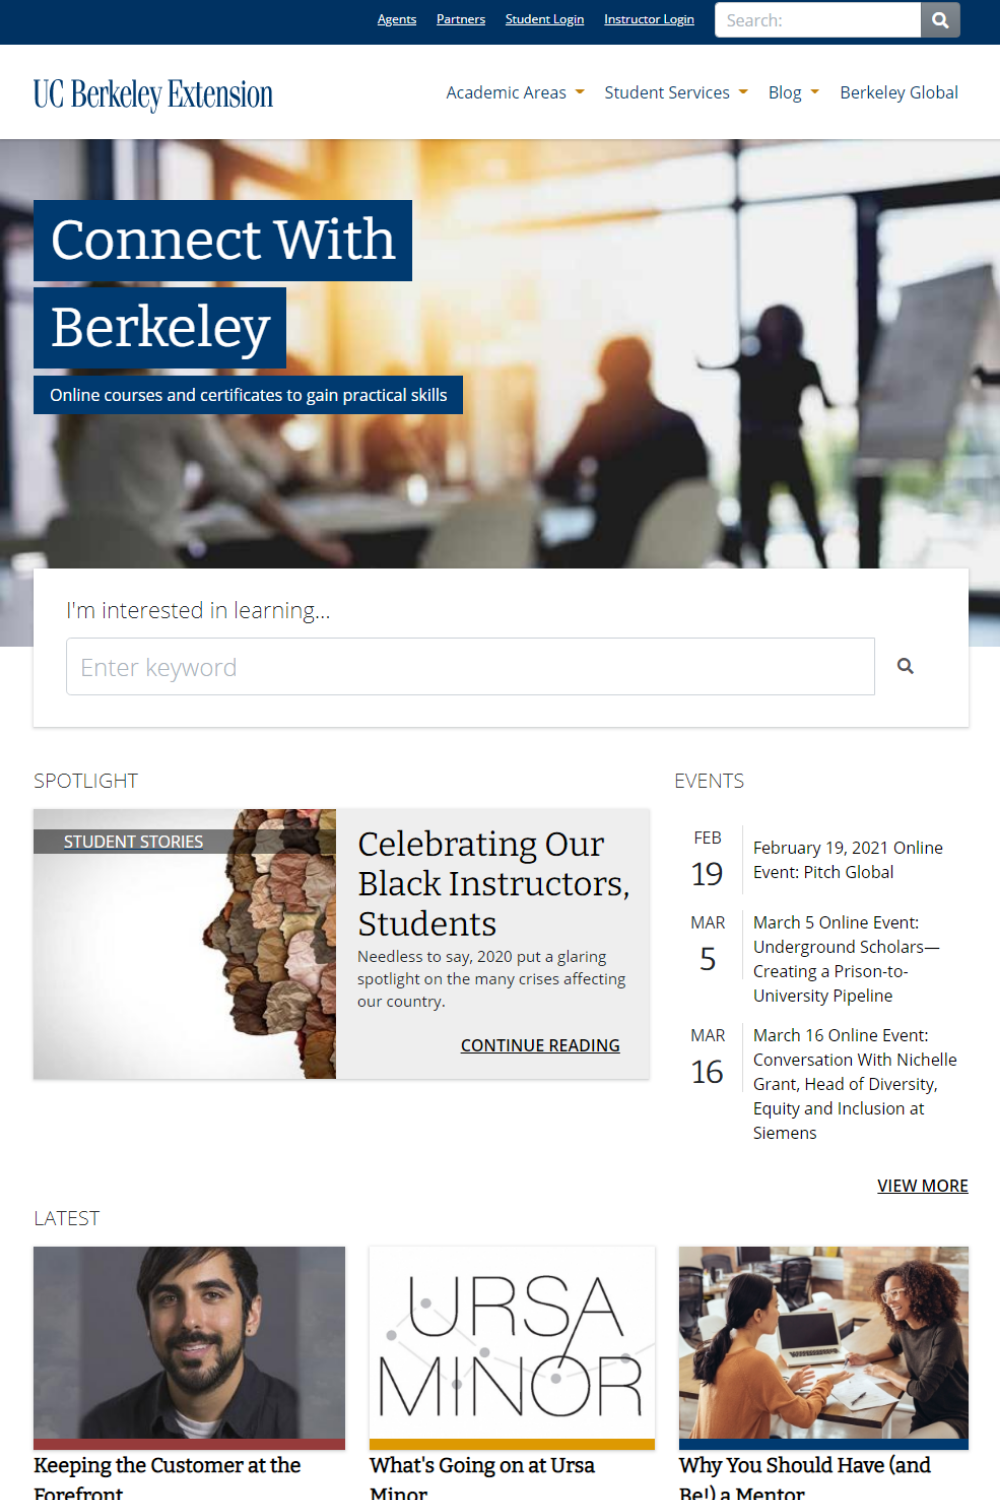 University of California Berkeley Extension is a Modern Campus customer.